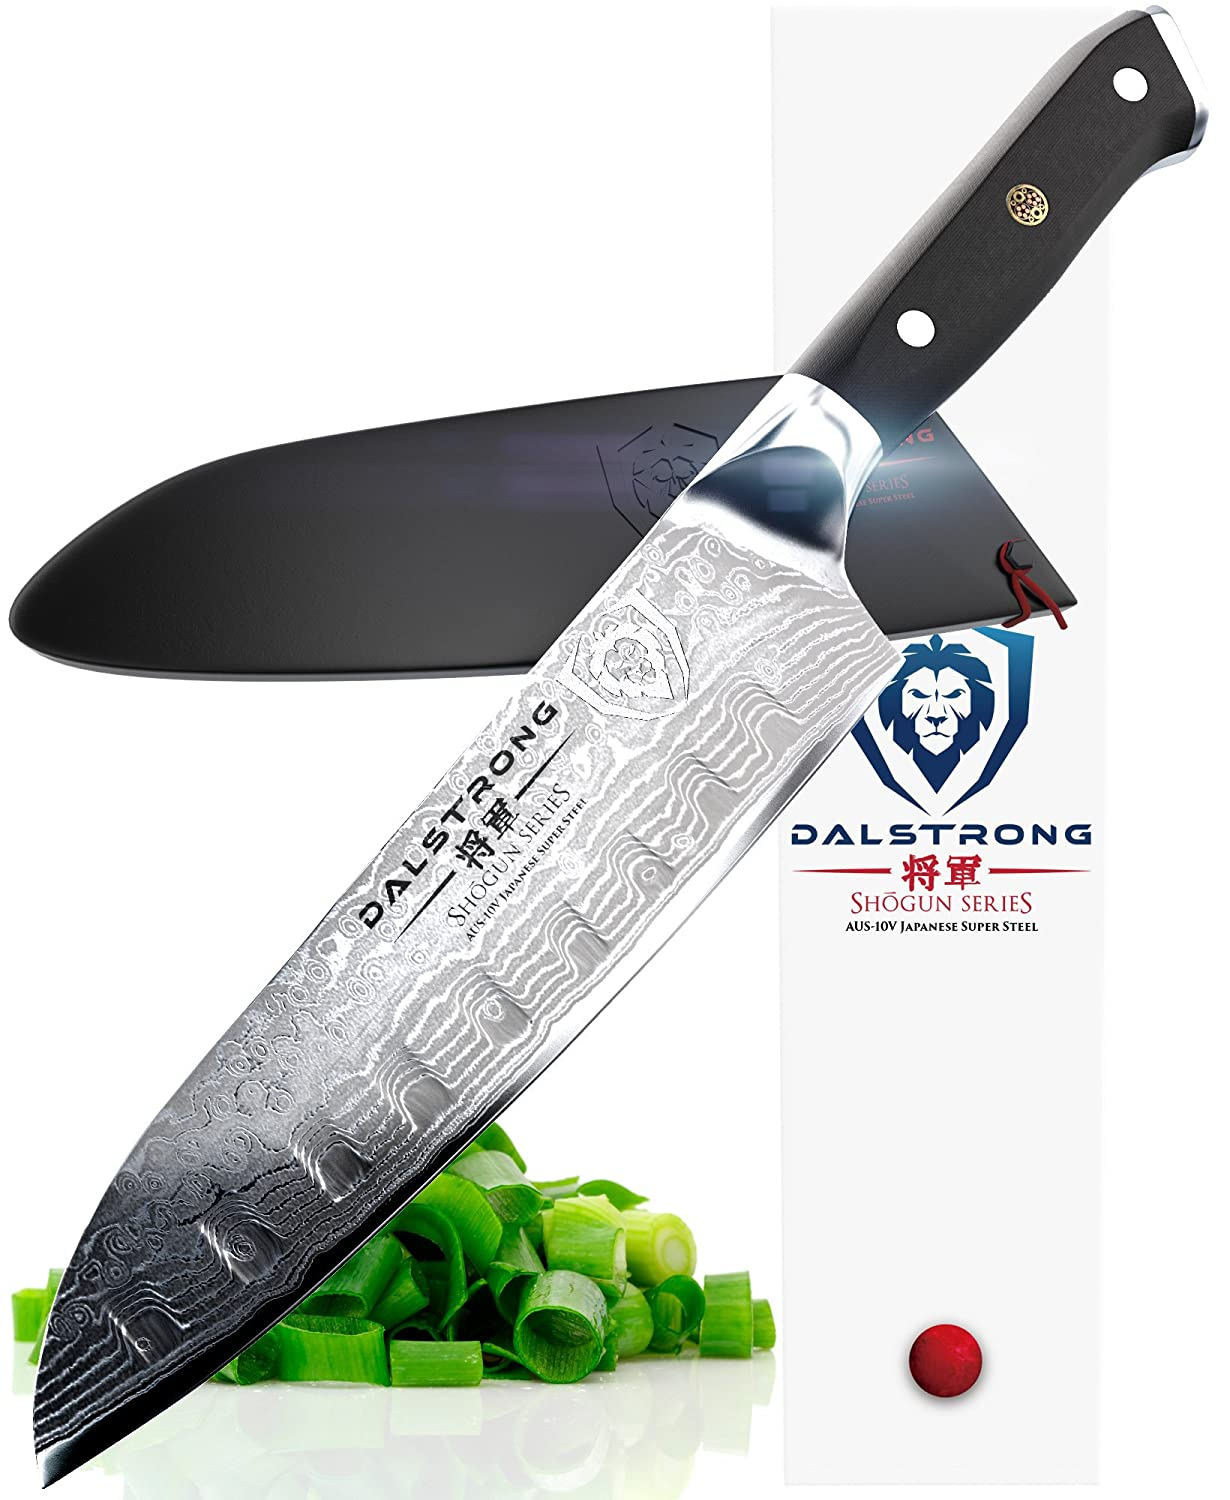 Santoku Knife - Shogun Series - AUS-10V Japanese Steel 67 Layers